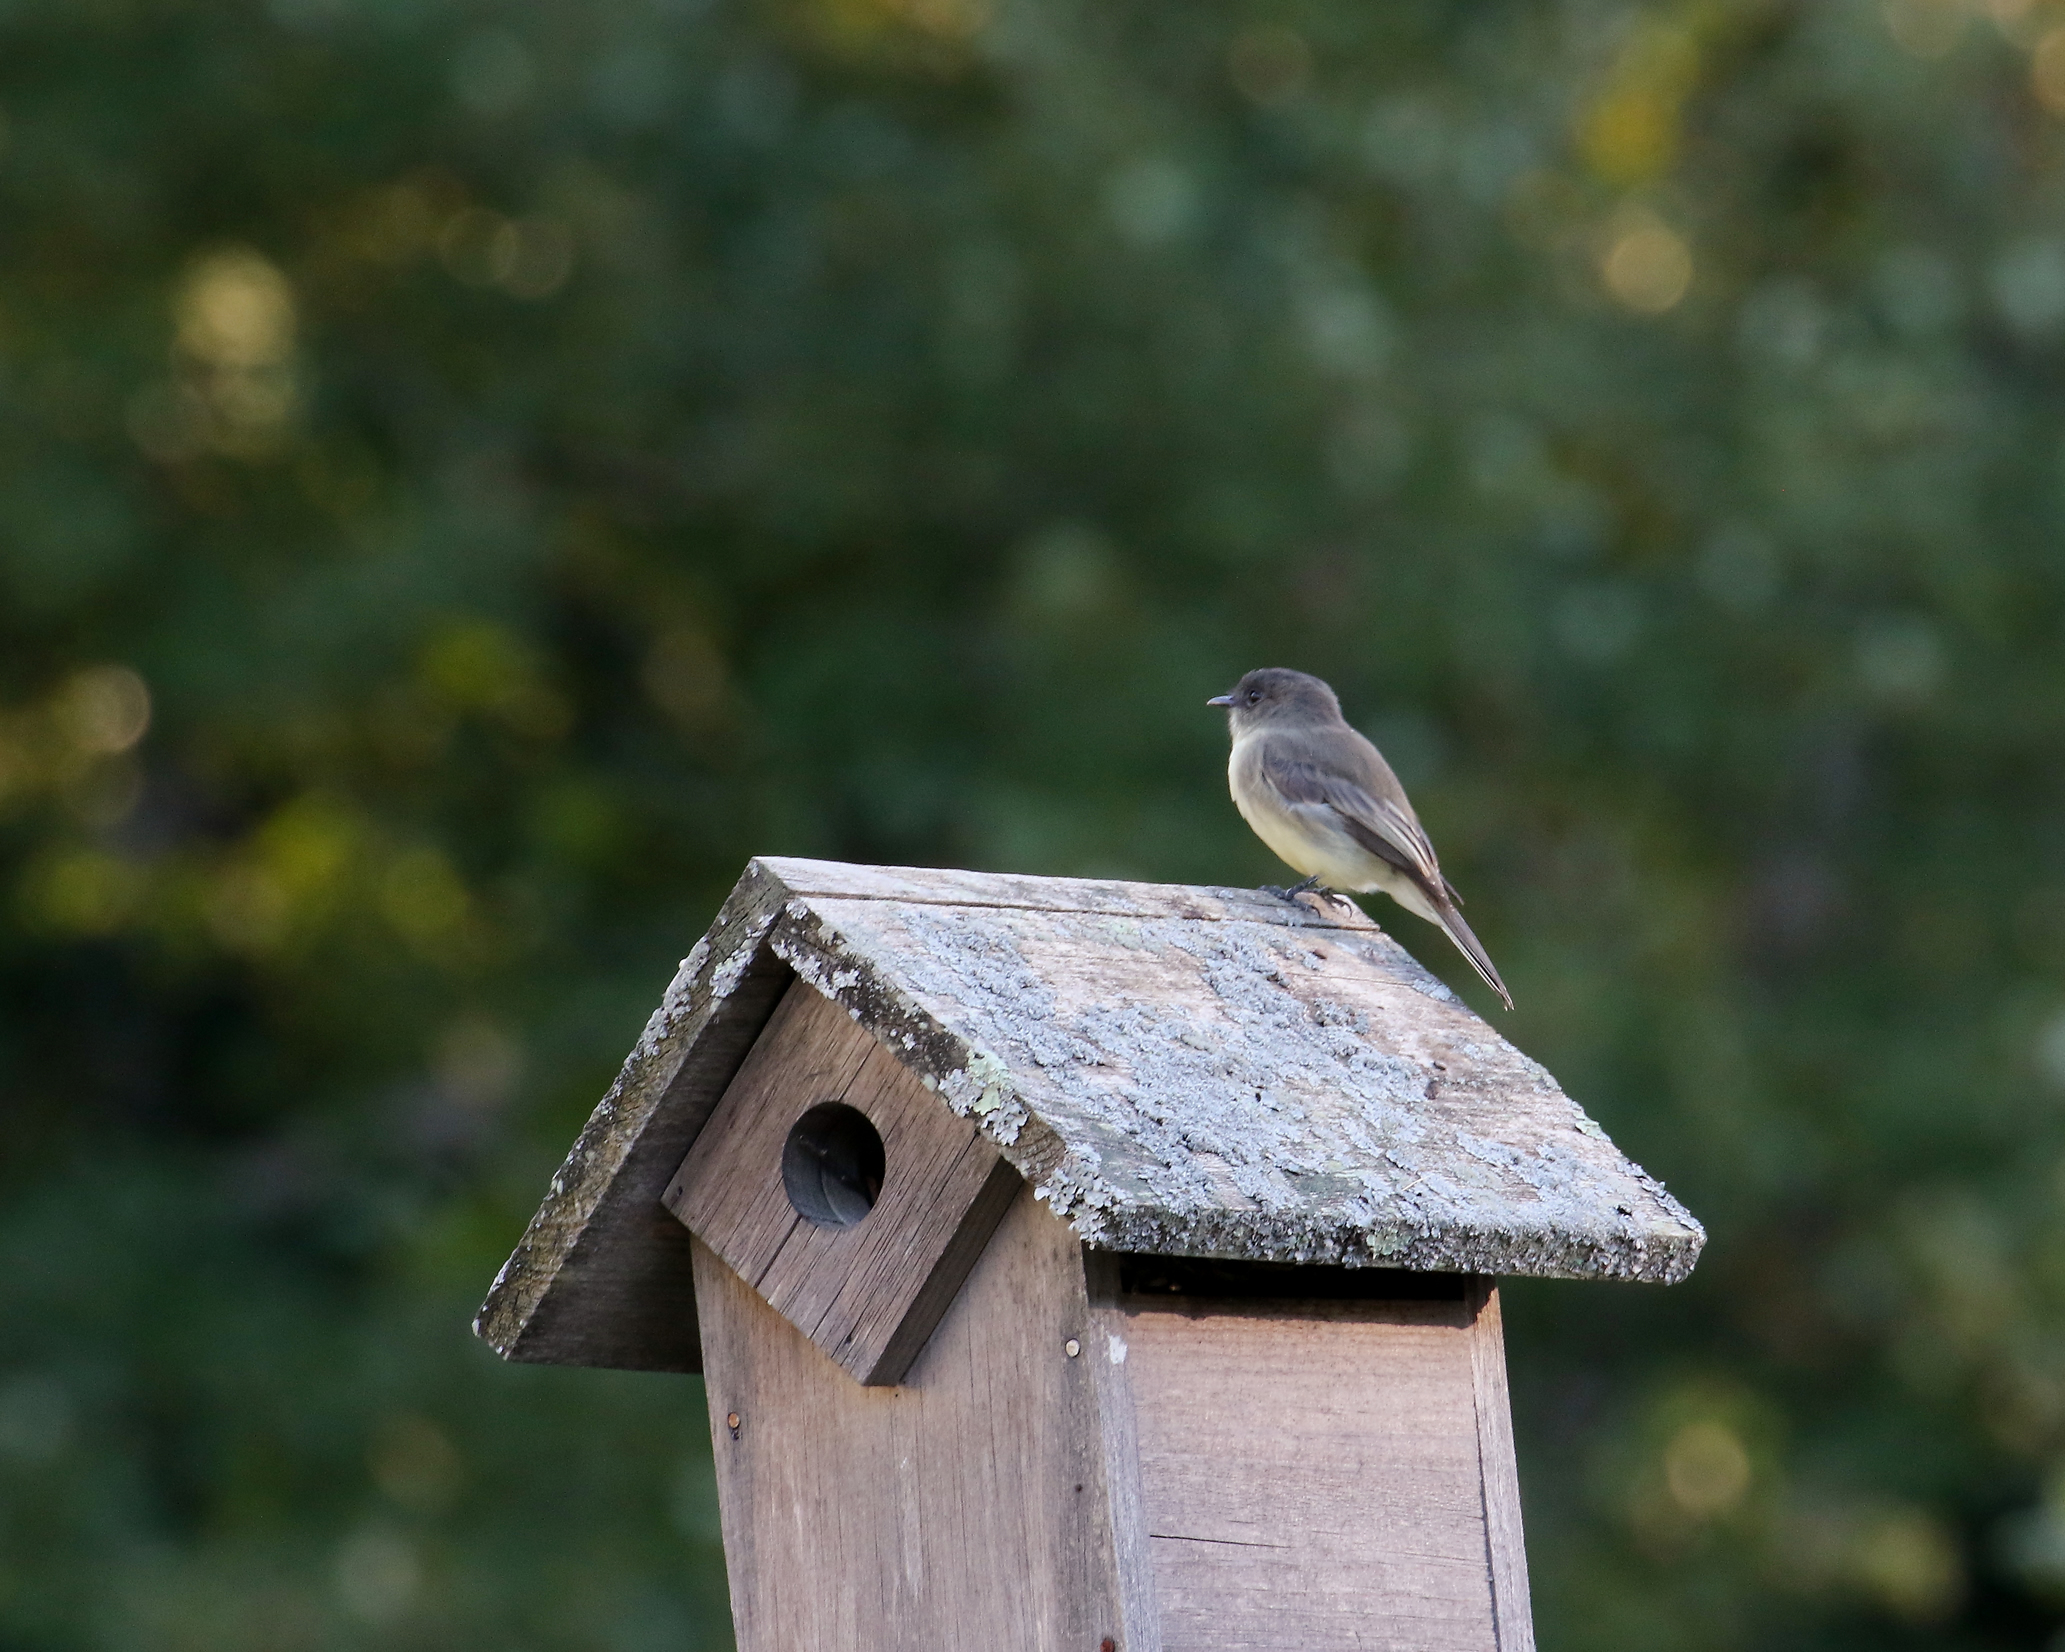 Birding at Brook Farm – Saturday, May 5, 9AM to 11AM